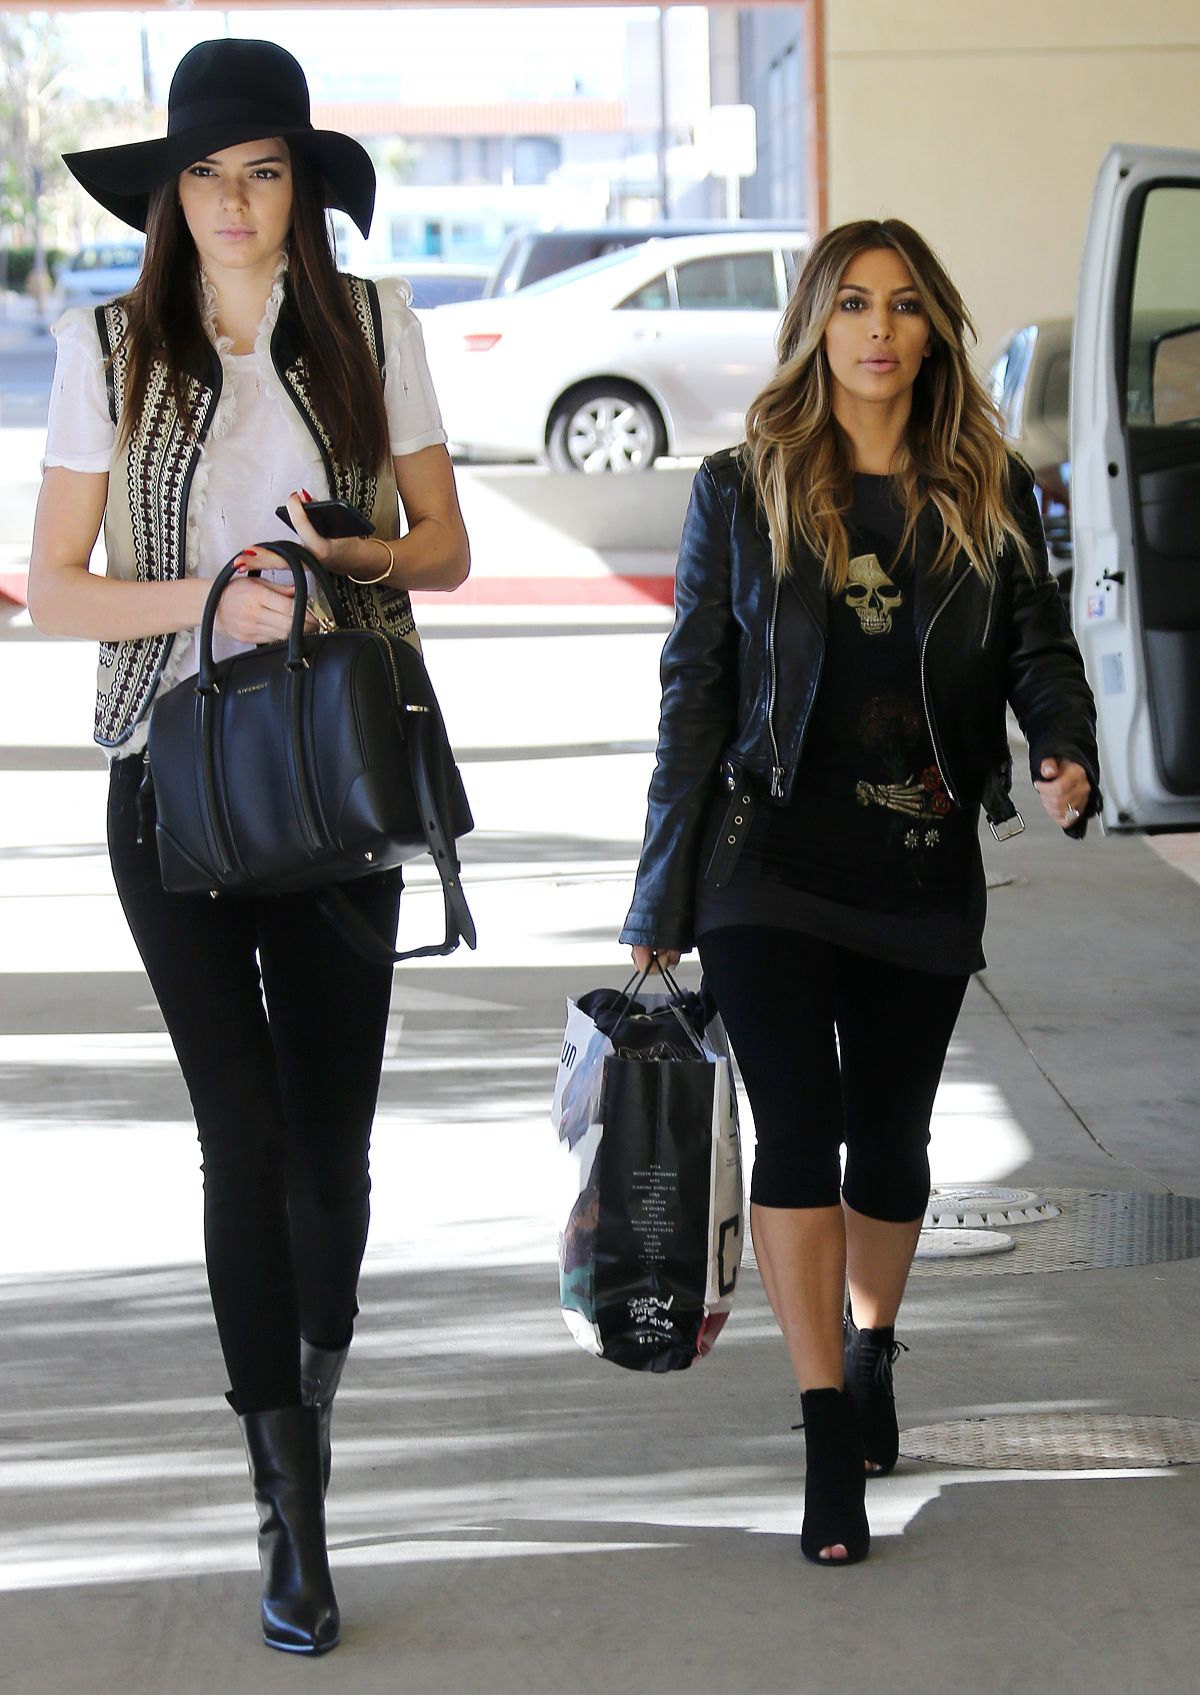 kim-kardashian-kendall-jenner-at-childrens-hospital-in-xmas-visit-in-los-angeles_7